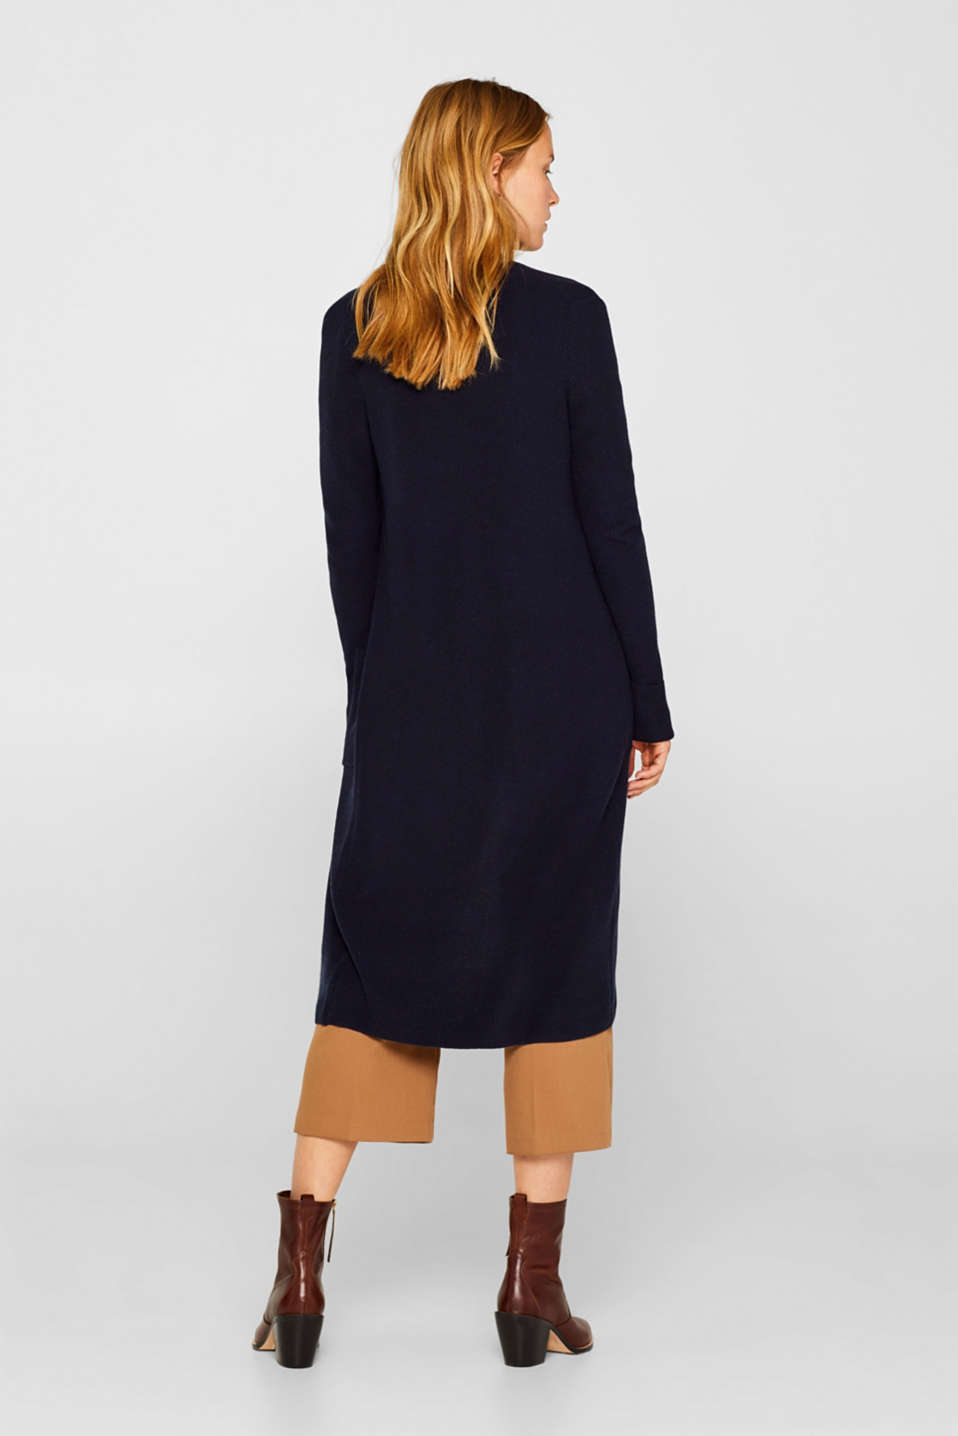 With cashmere: Long, rib knit cardigan, NAVY 2, detail image number 3